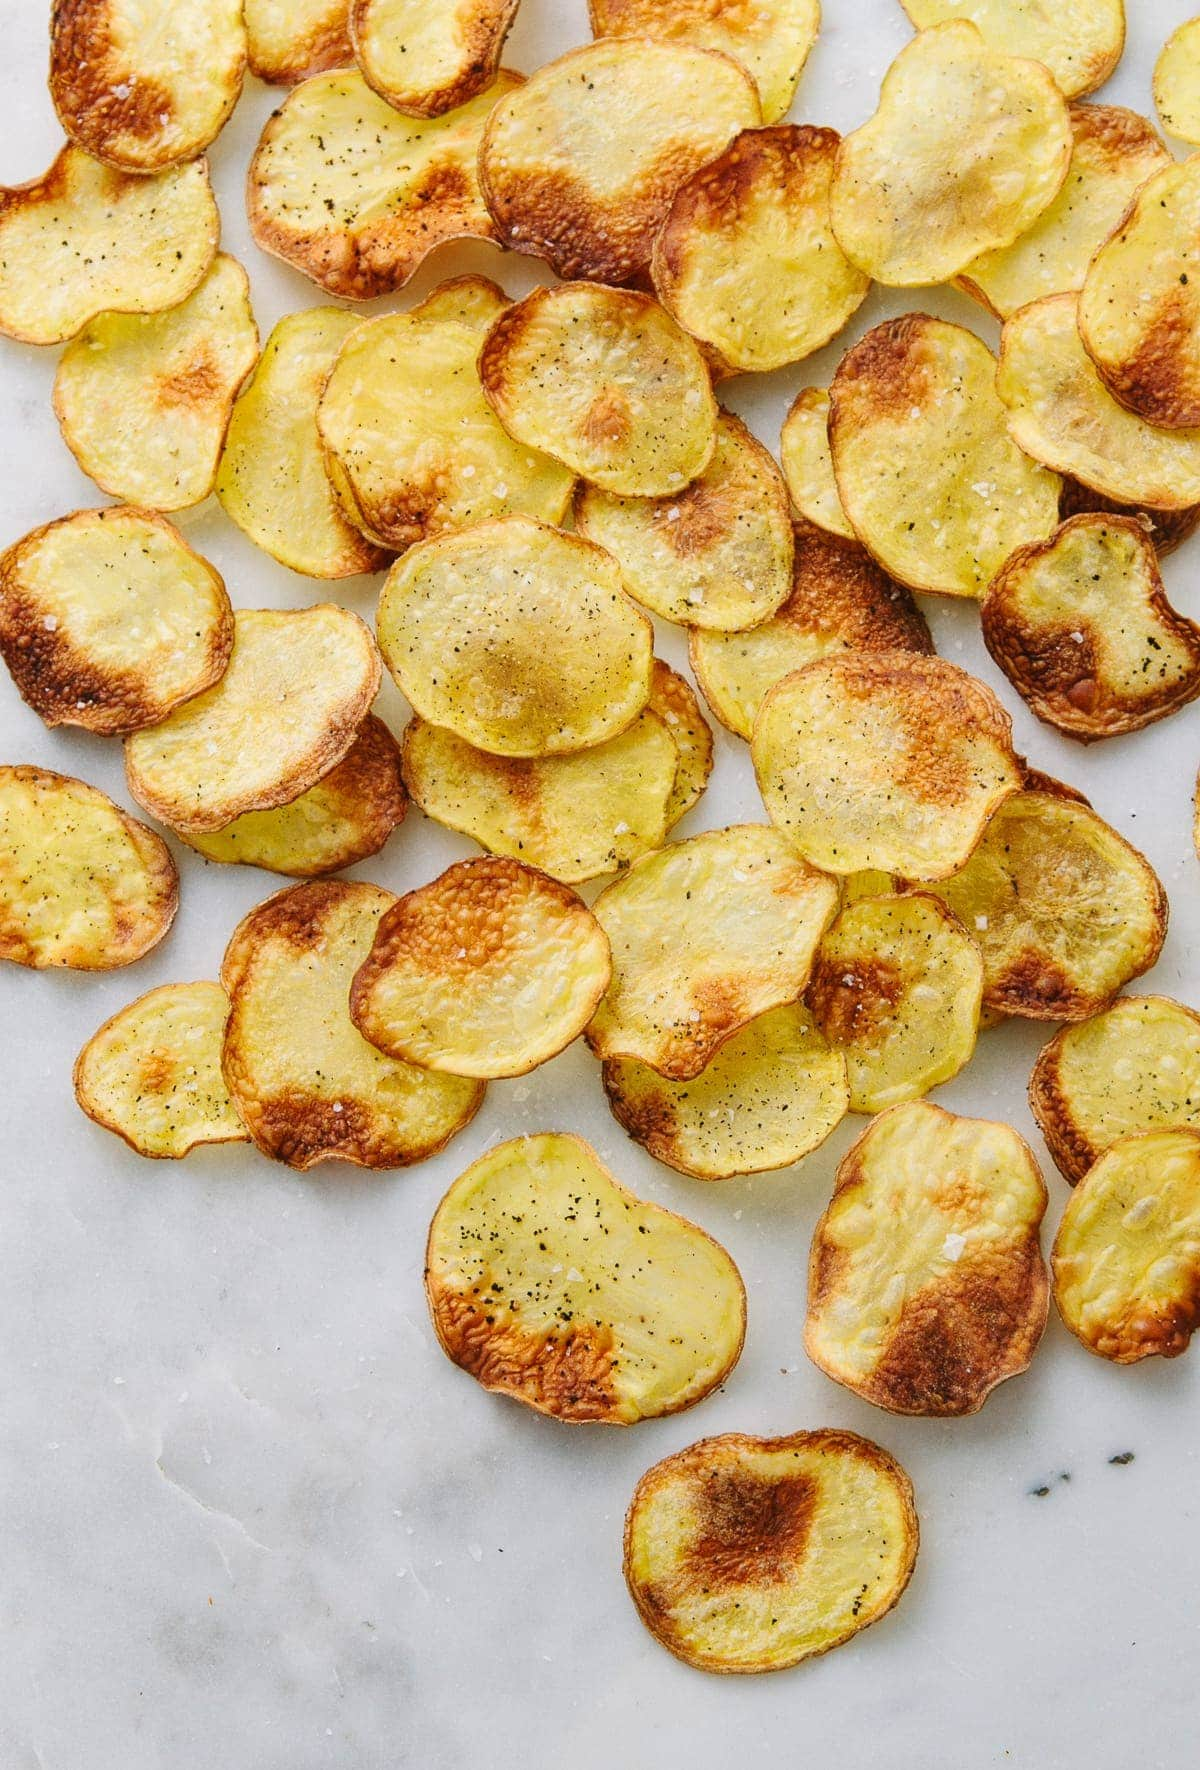 top down view of scattered homemade potato chips on a marble slab.